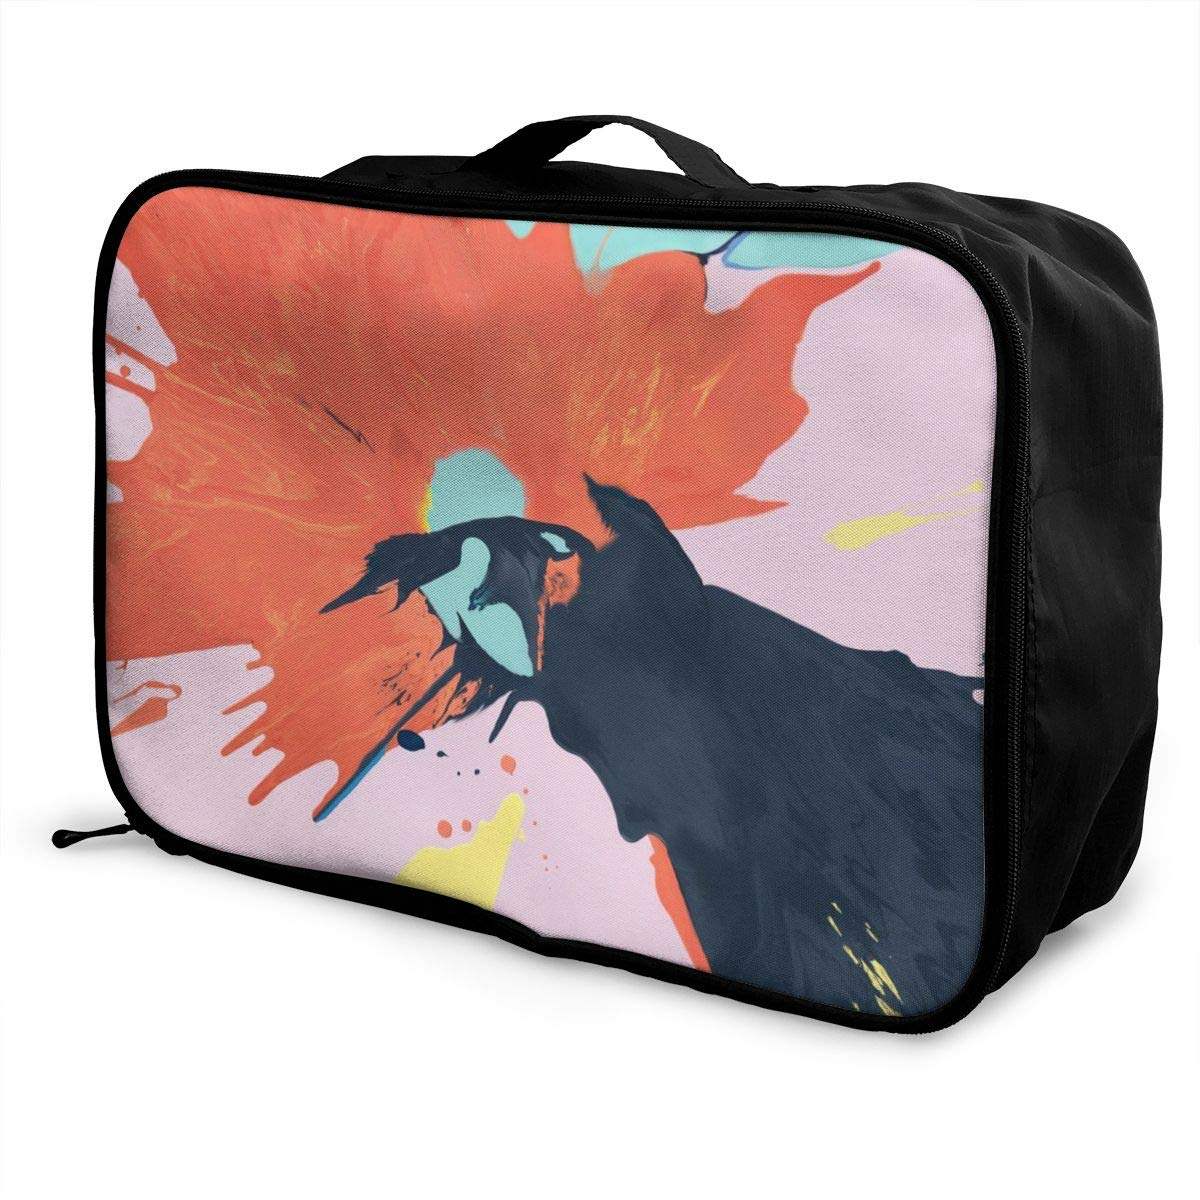 Paint Splash Colorful Pigment Graffiti Travel Lightweight Waterproof Foldable Storage Carry Luggage Duffle Tote Bag Large Capacity In Trolley Handle Bags 6x11x15 Inch